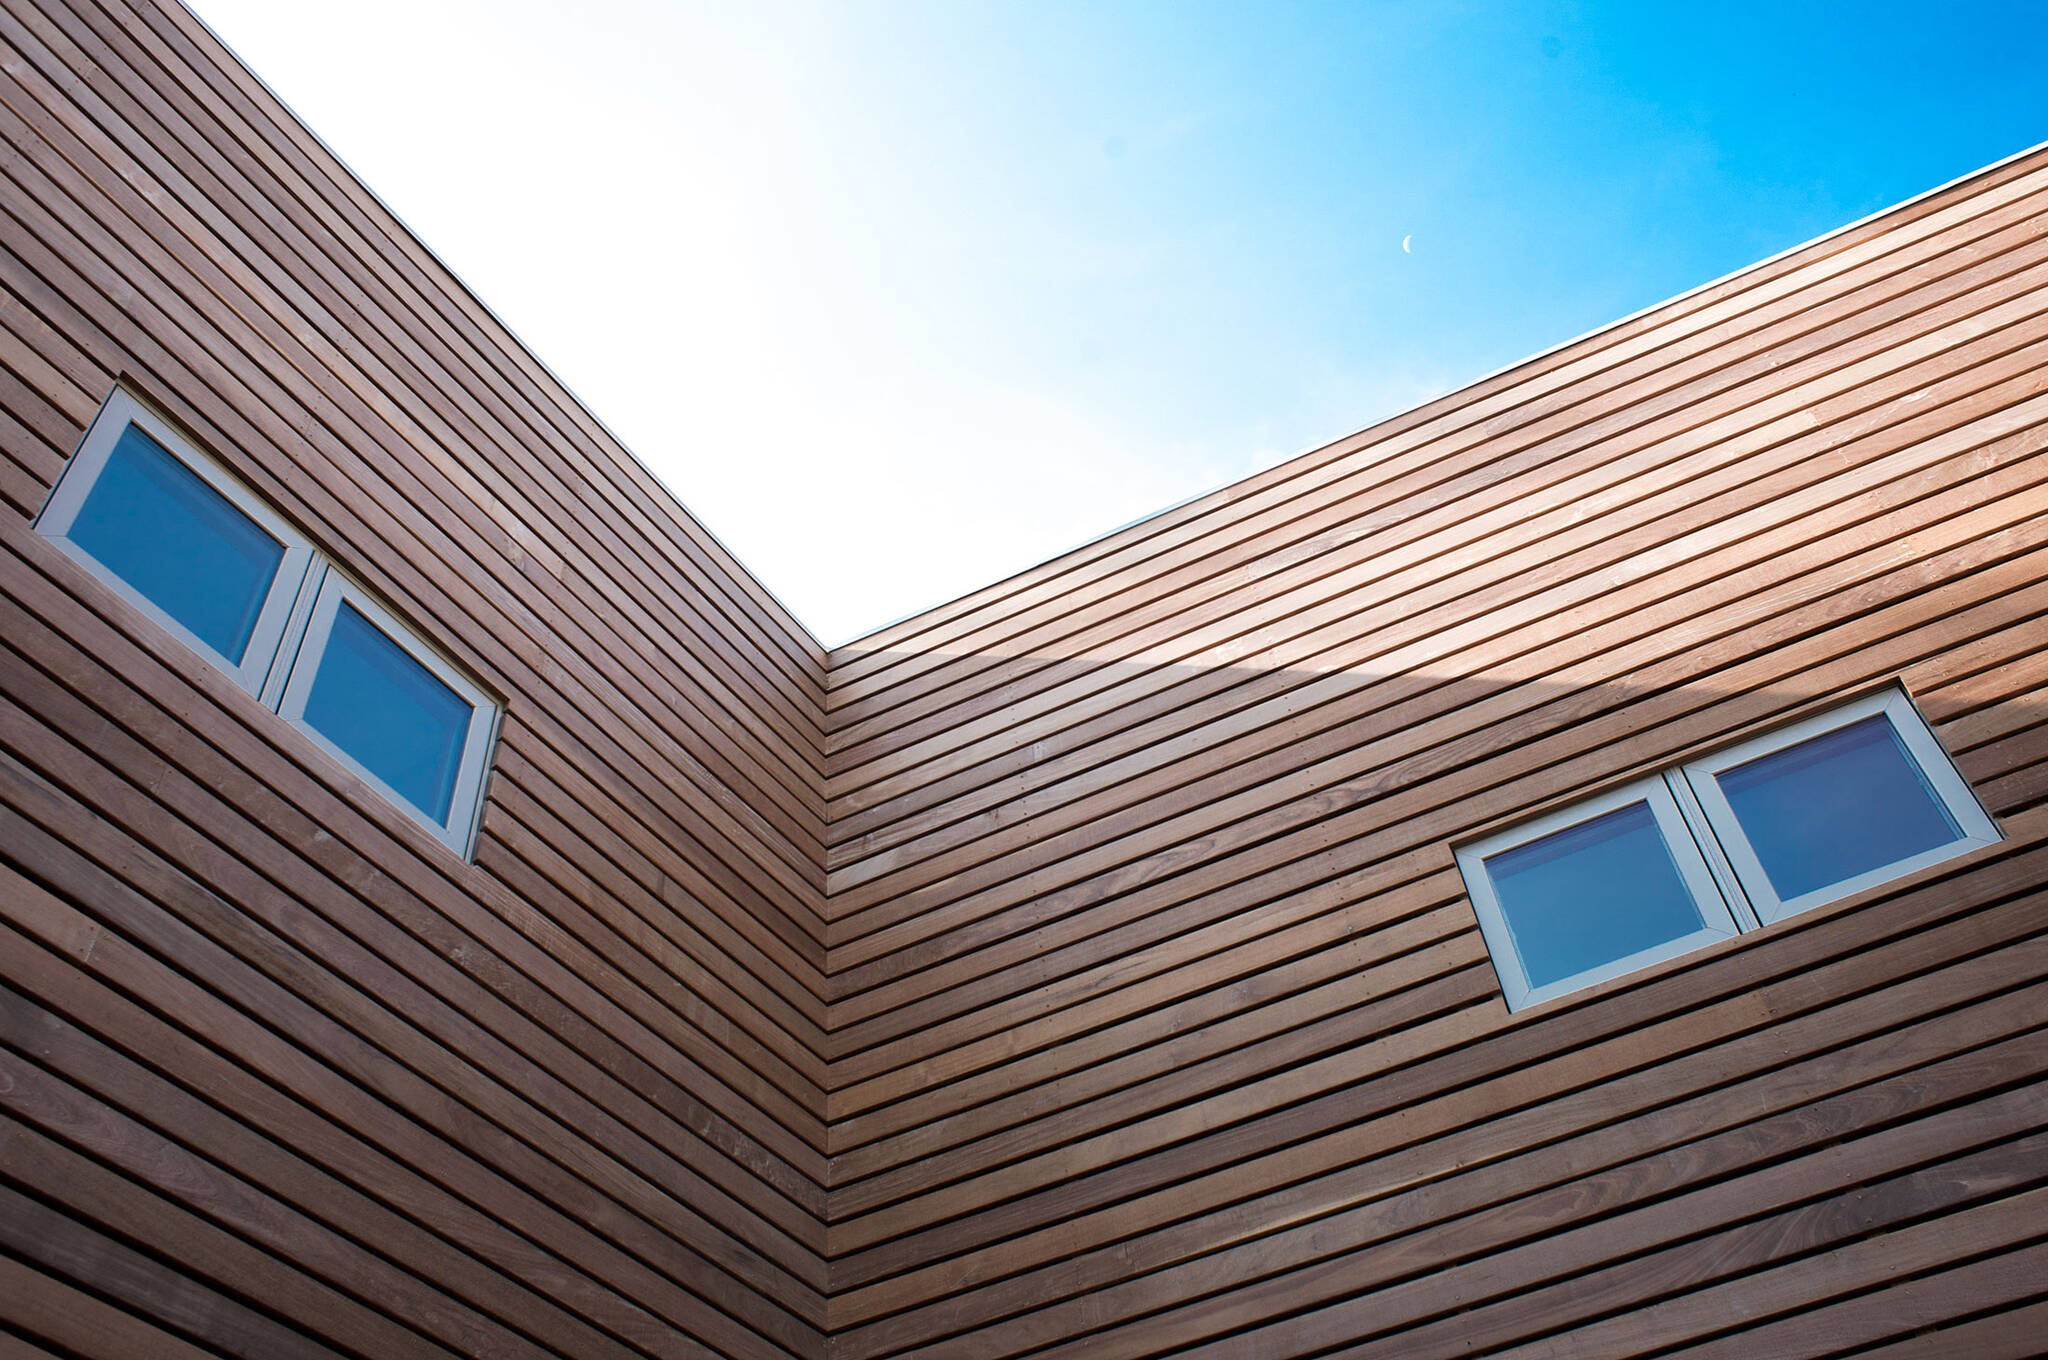 Horizontal IPE Brazilian walnut rainscreen cladding of the sustainable lake house project in Omena, Michigan designed by the architecture studio Danny Forster & Architecture